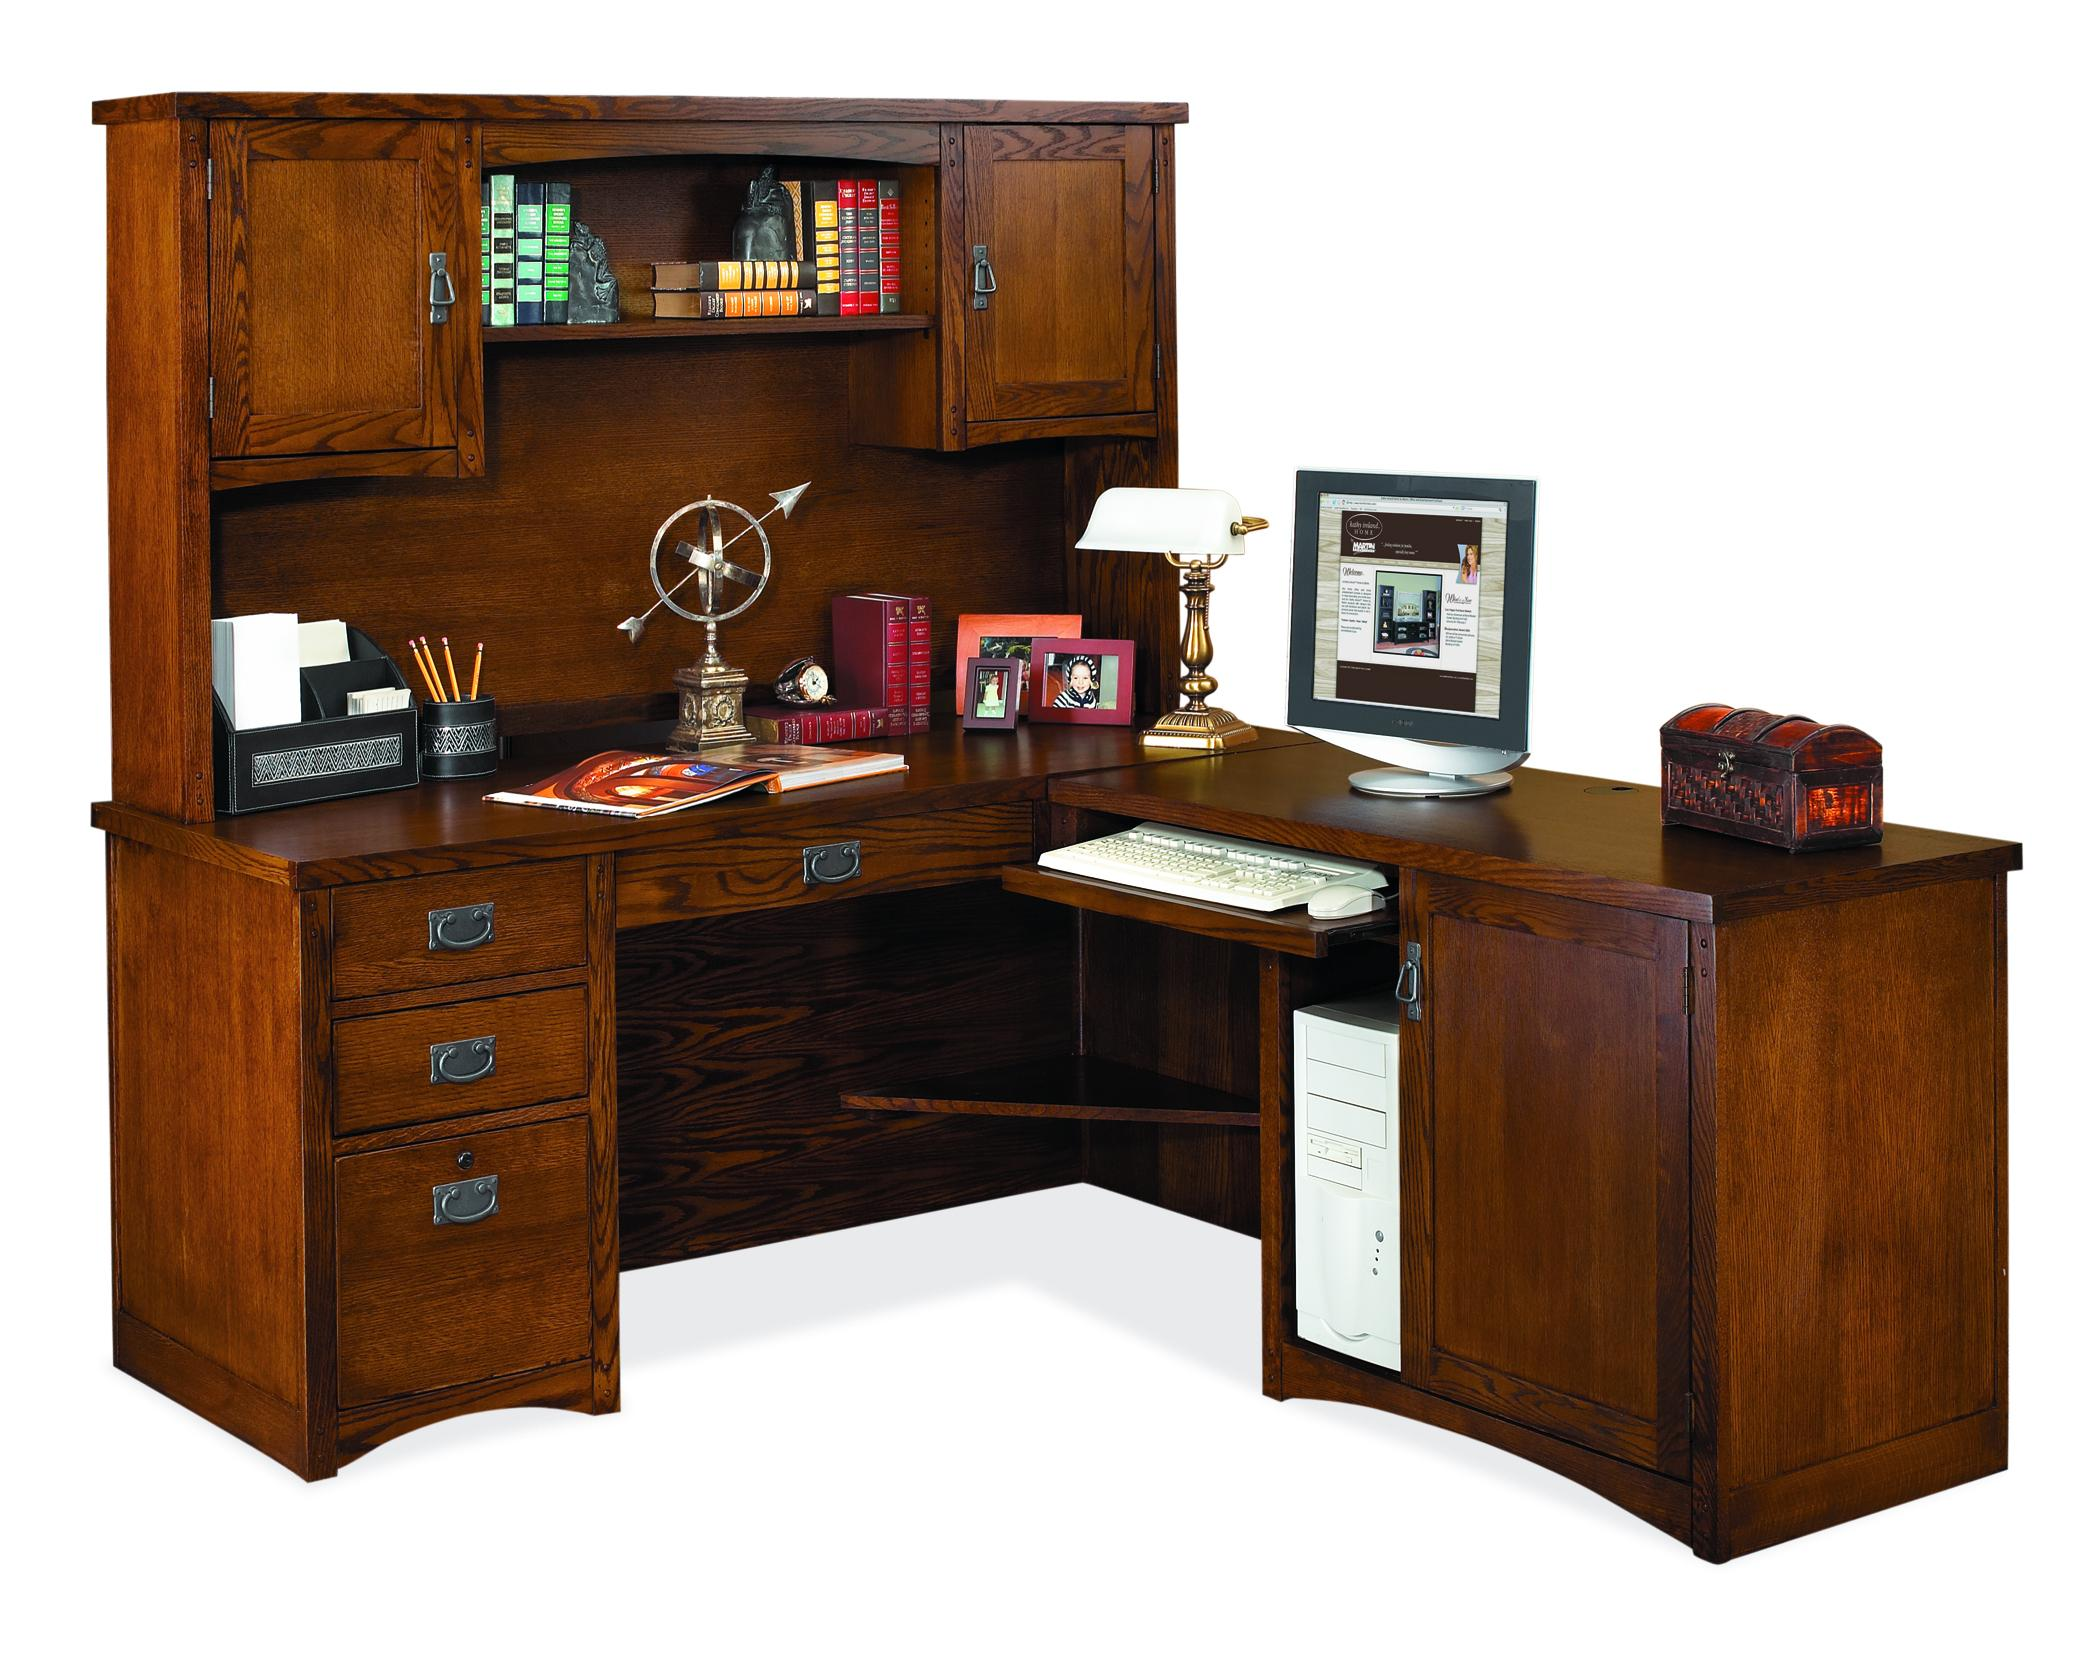 kathy ireland Home by Martin Mission Pasadena L-Shaped Desk & Hutch - Item Number: MP684R+684R-R+682